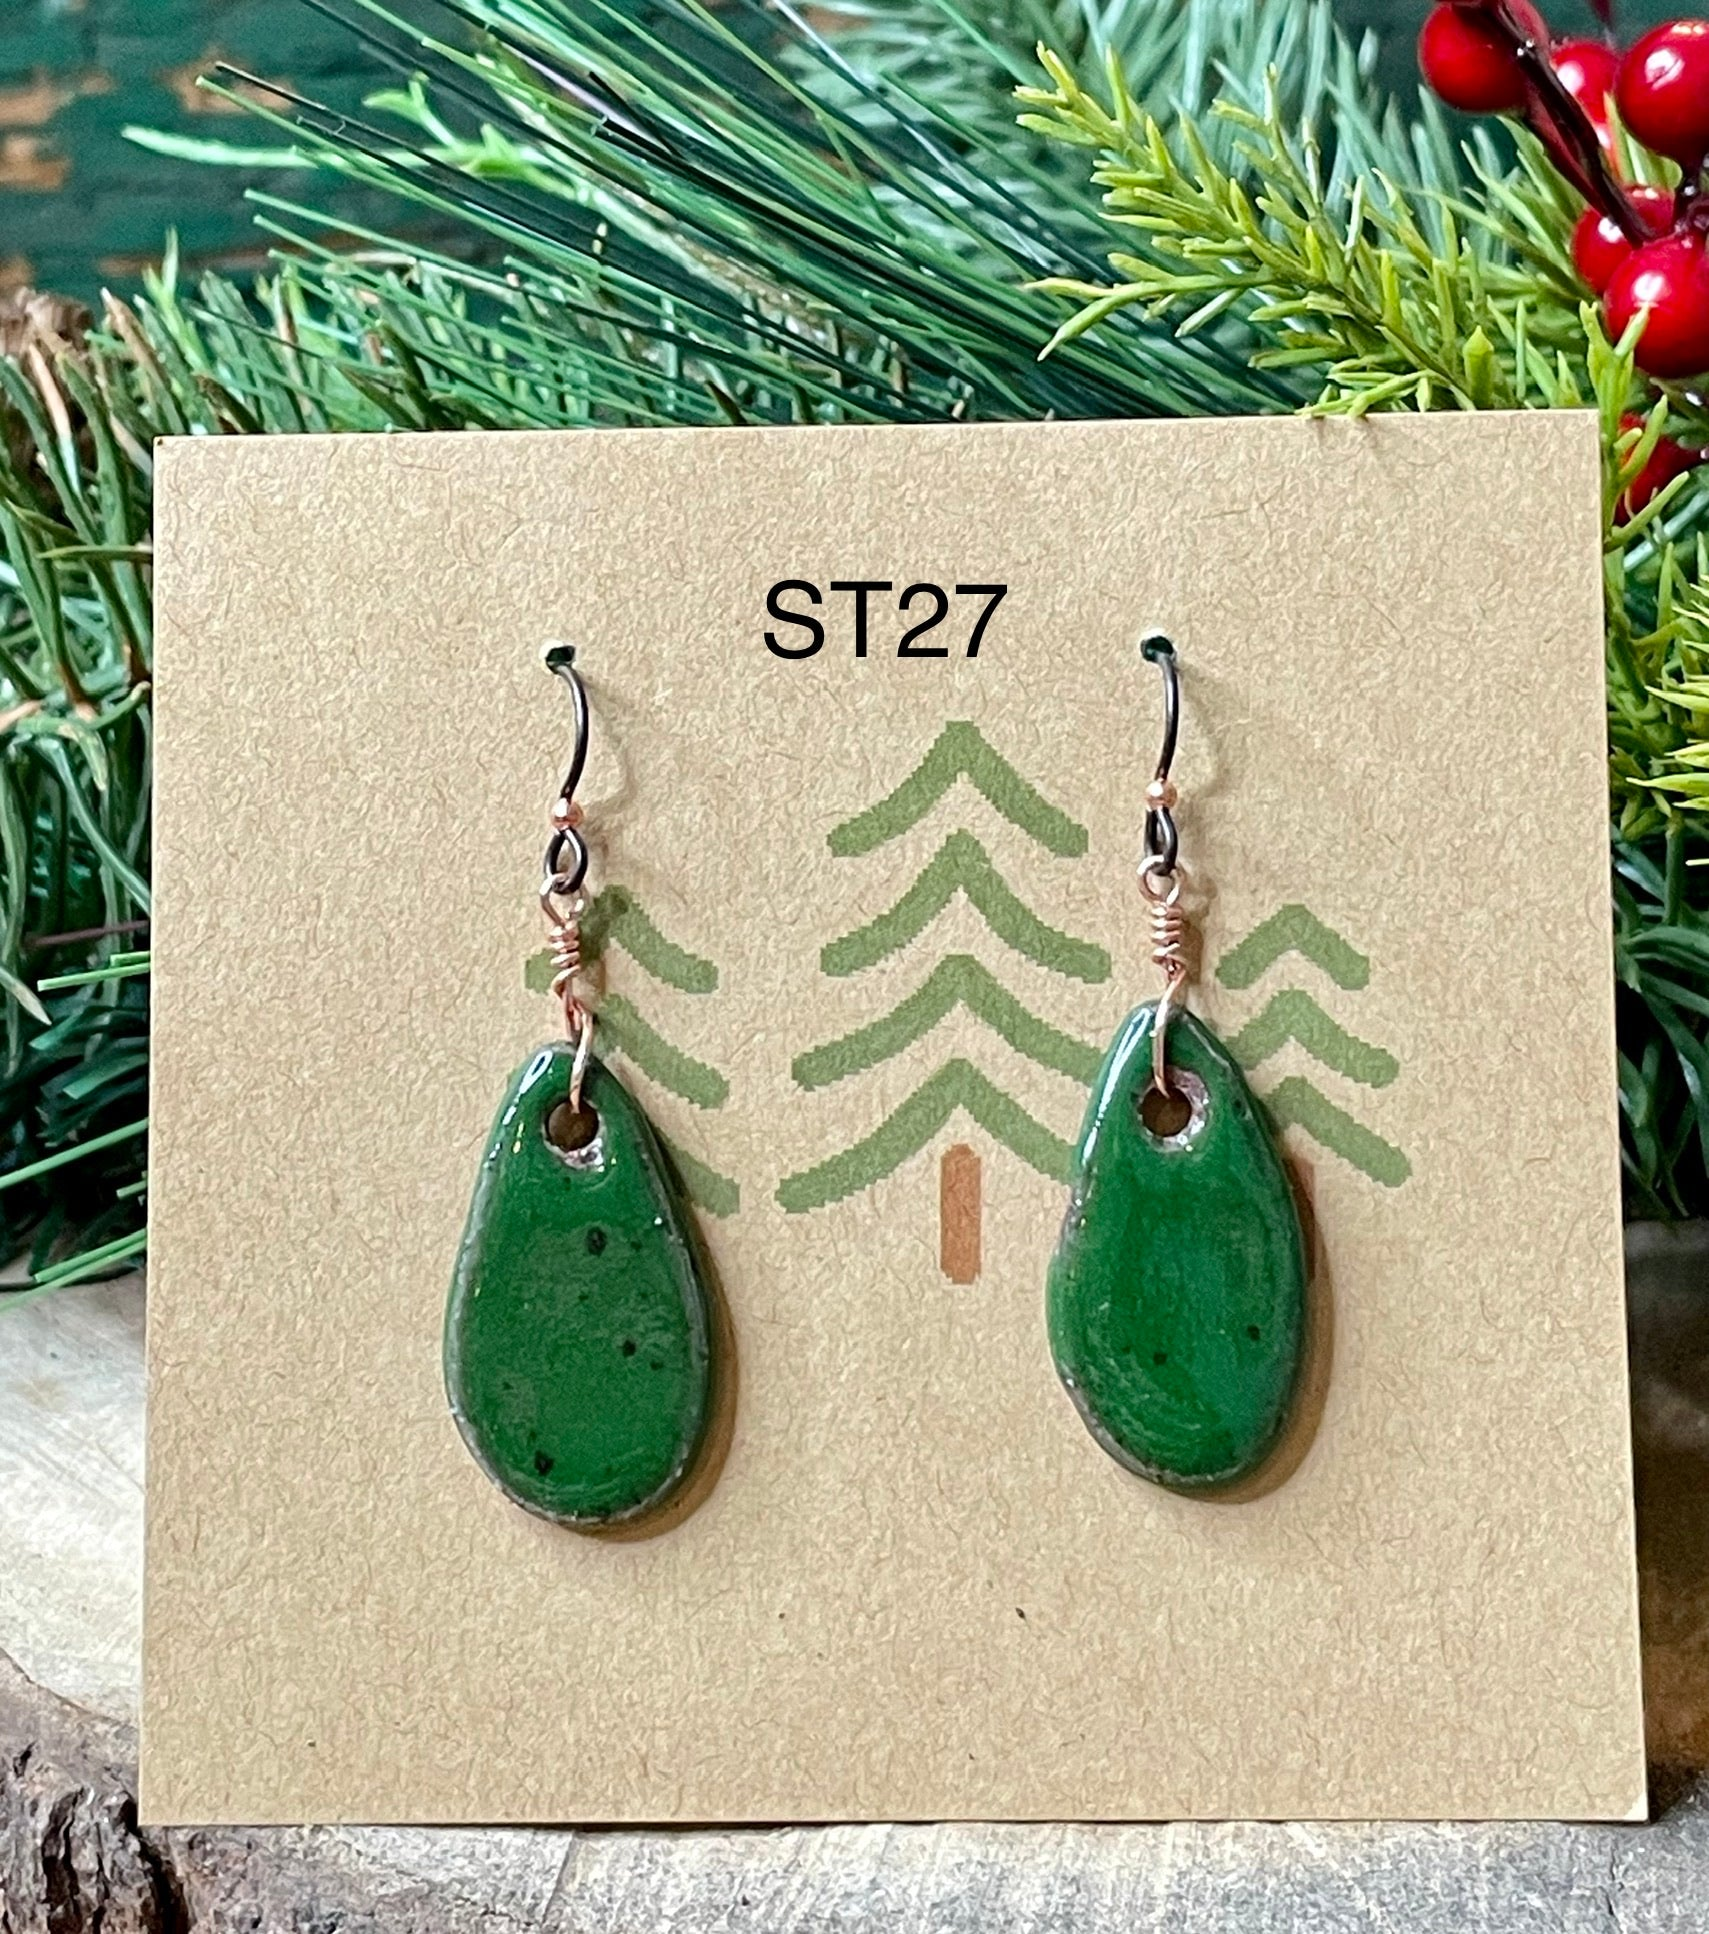 Small Ceramic Teardrop Earrings - 9 different pairs available!